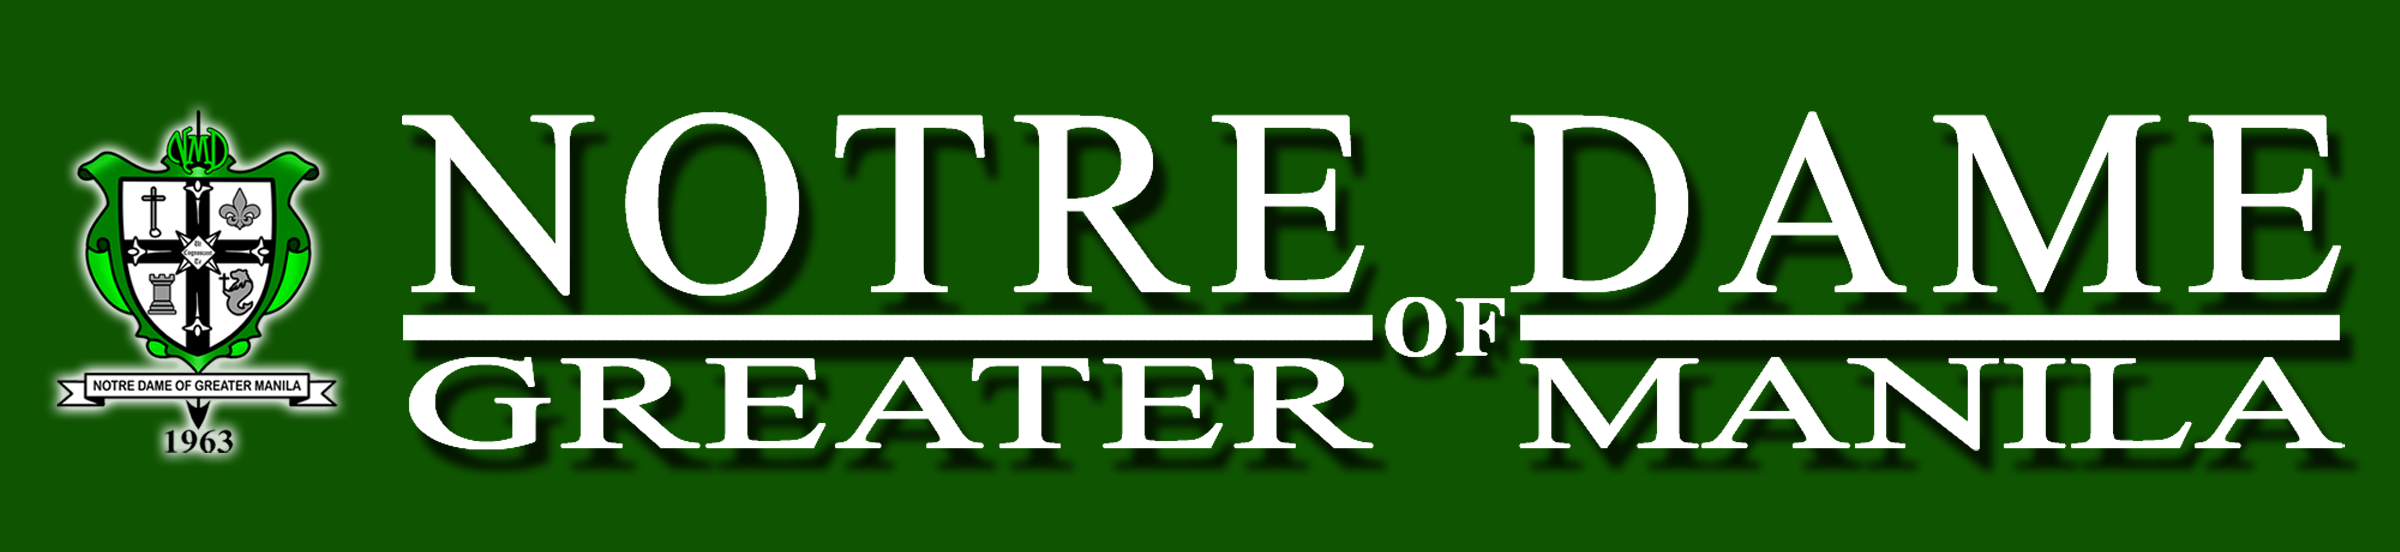 Notre Dame of Greater Manila Logo